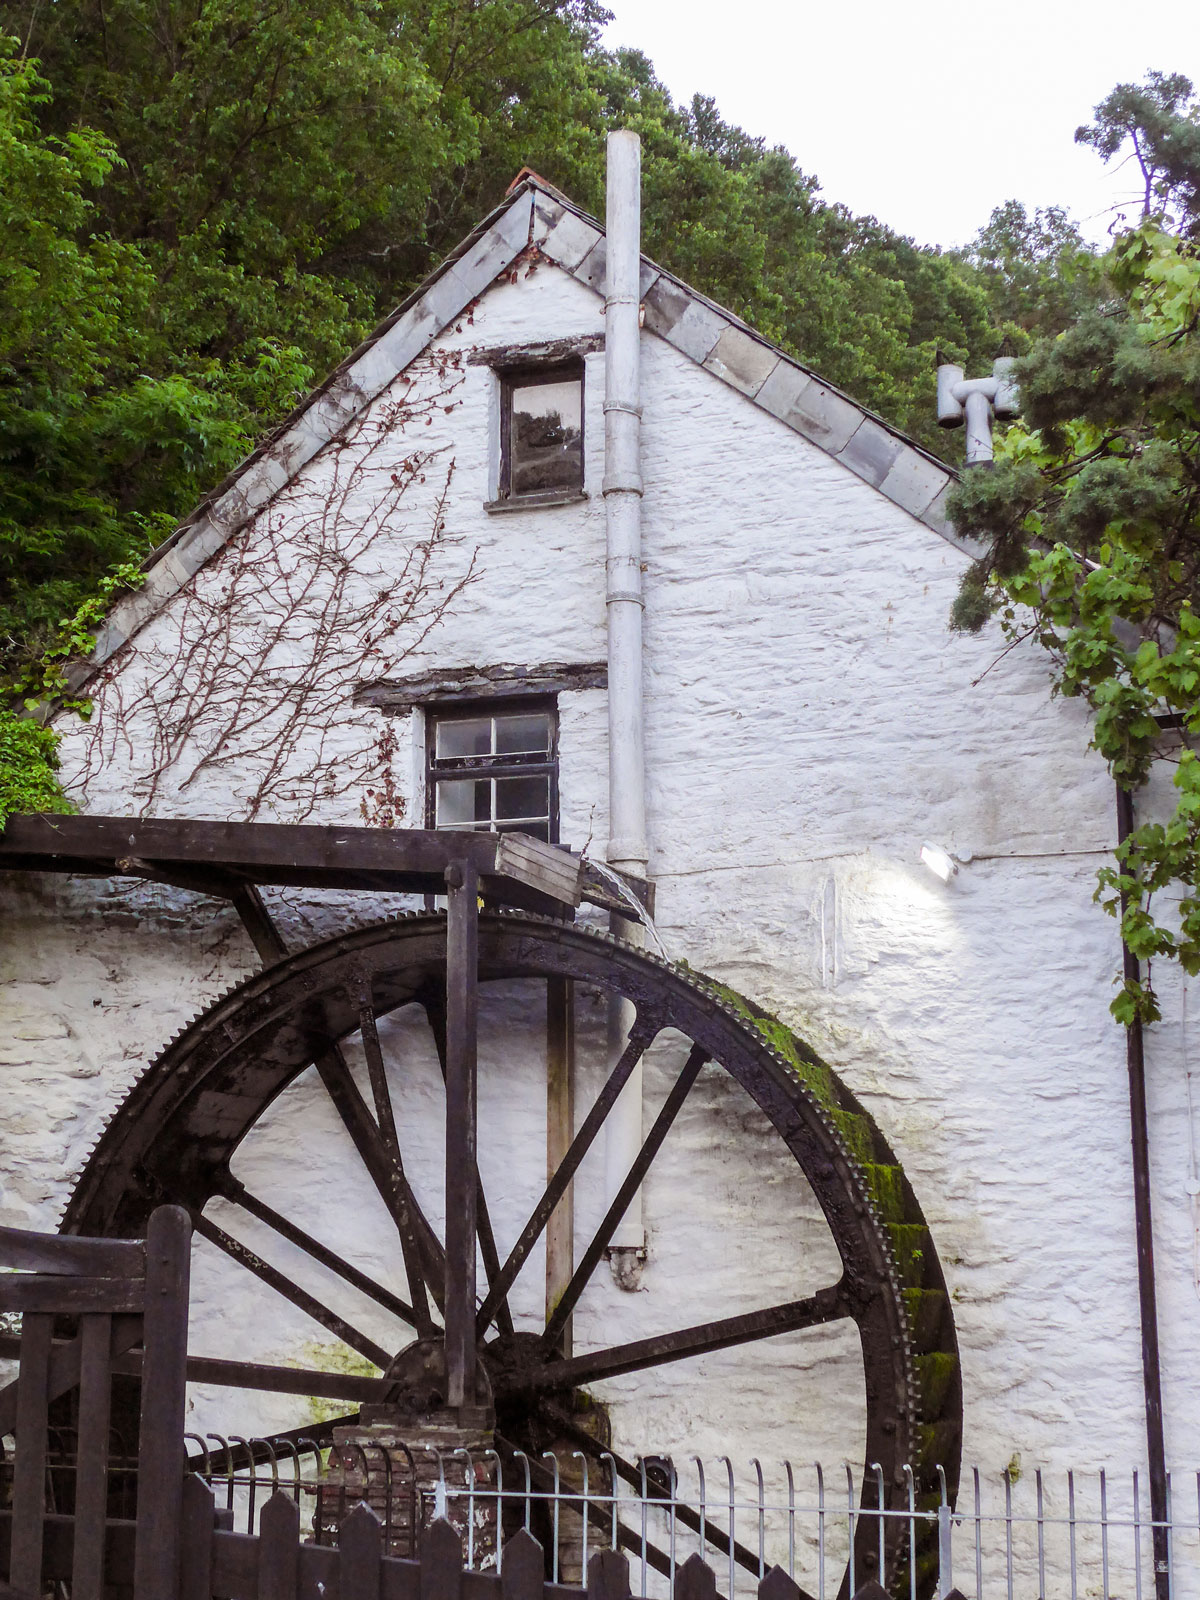 Polperro-Cornwall-The-Crumpehorn-Inn-and-Mill